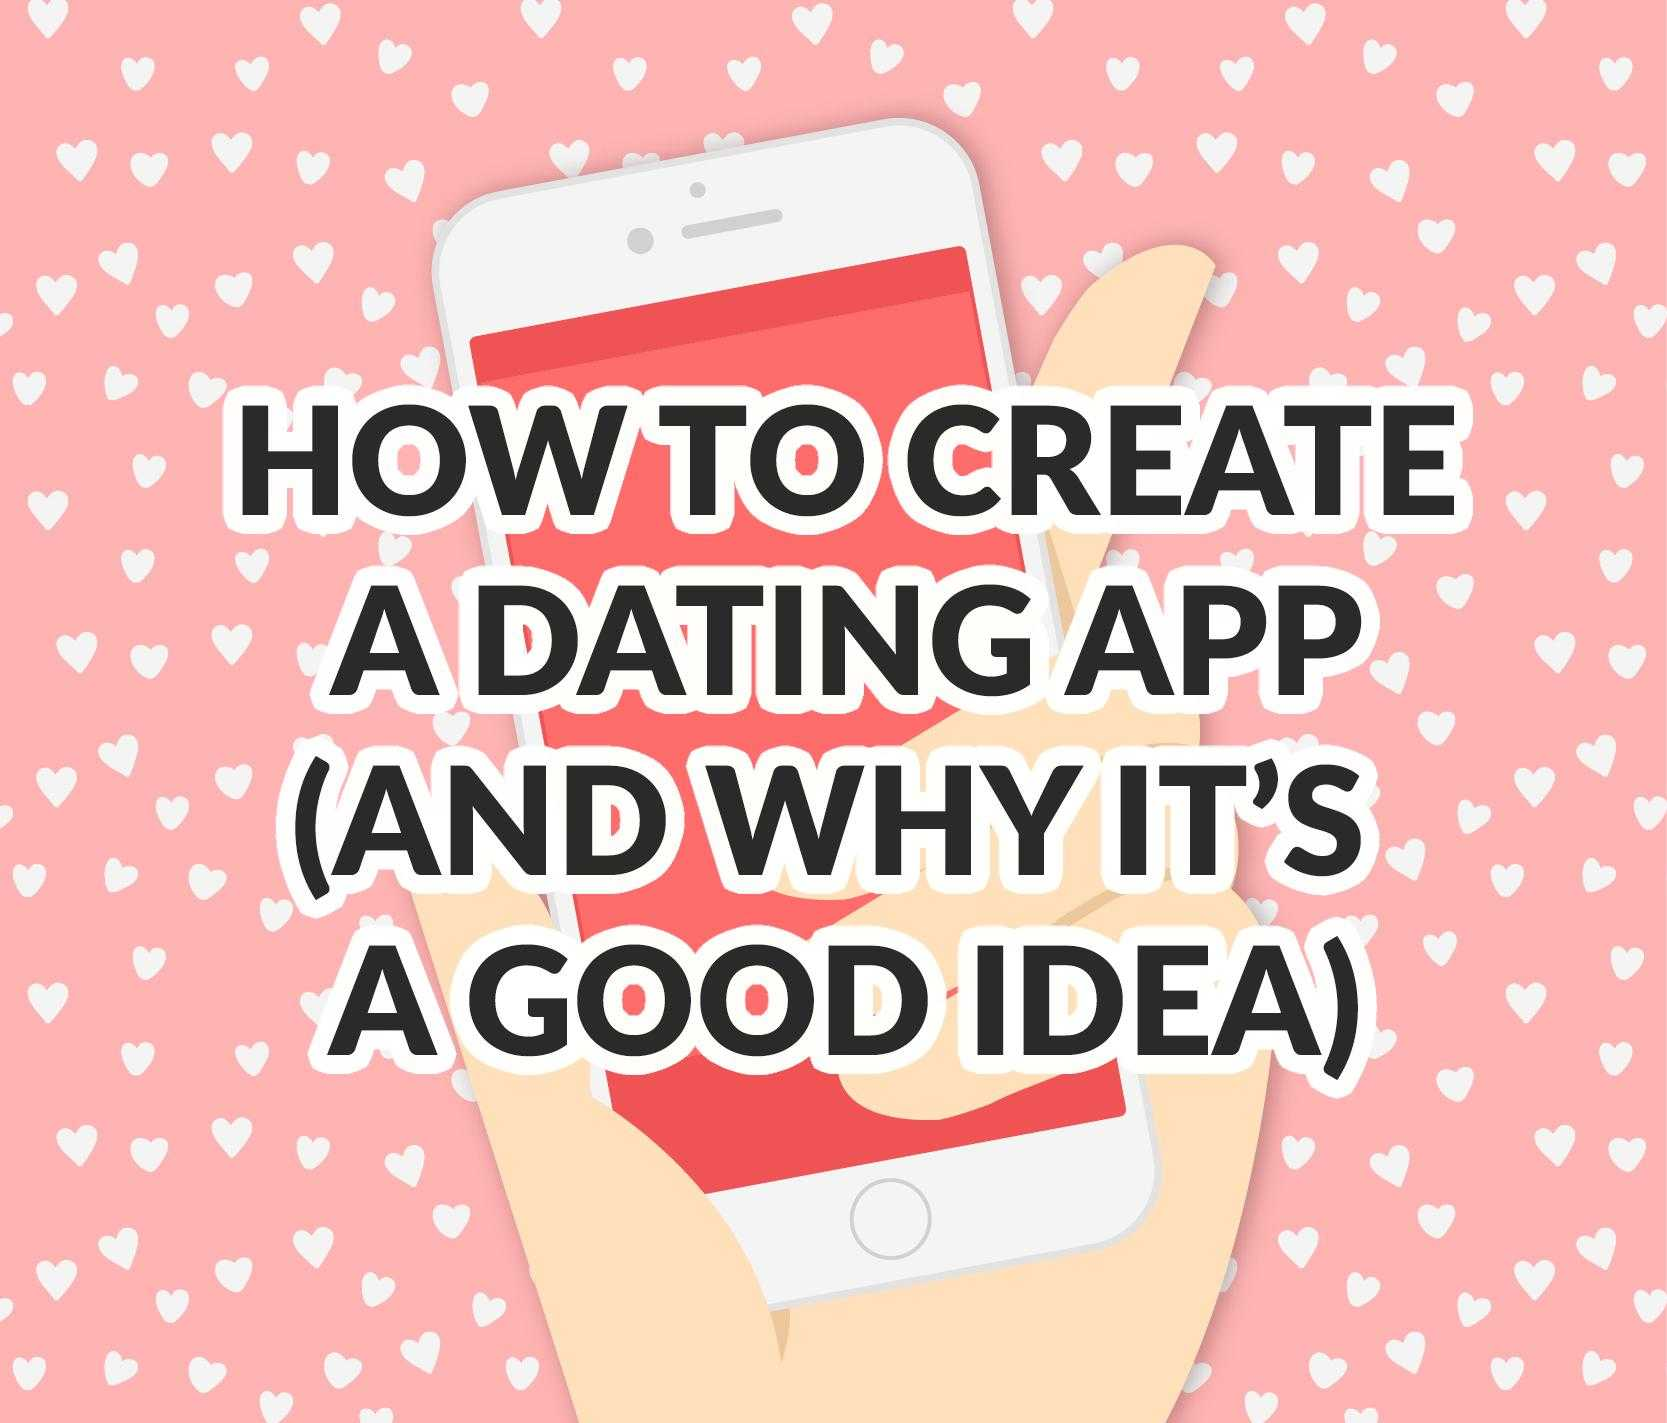 How to make dating apps saer